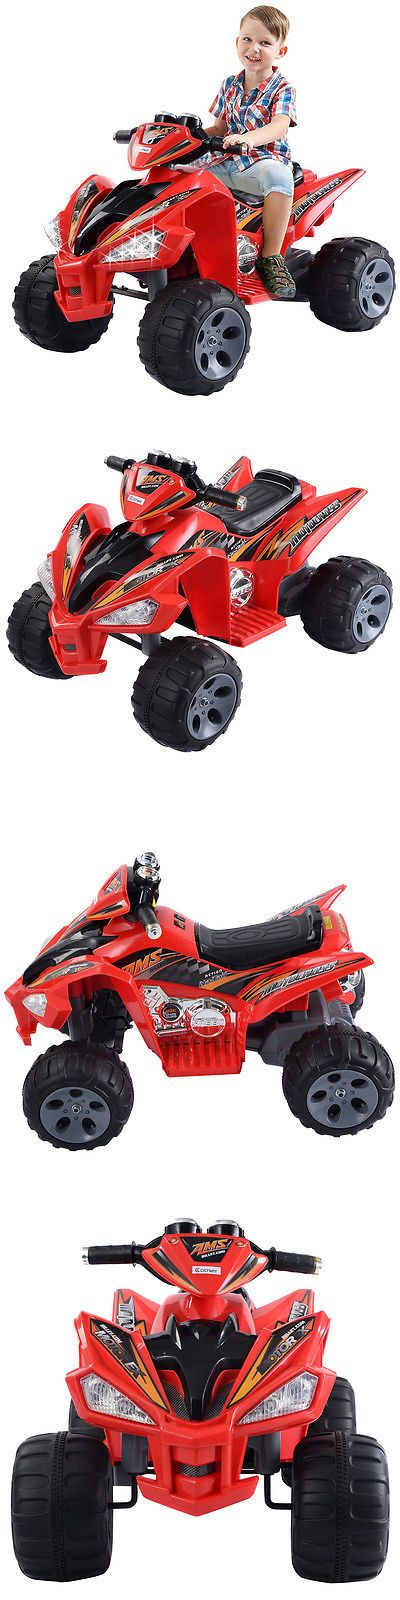 Ride On Toys and Accessories 145944: Kids Ride On Atv Quad 4 Wheeler Electric Toy Car 12V Battery Power Led Lights -> BUY IT NOW ONLY: $119.99 on eBay!